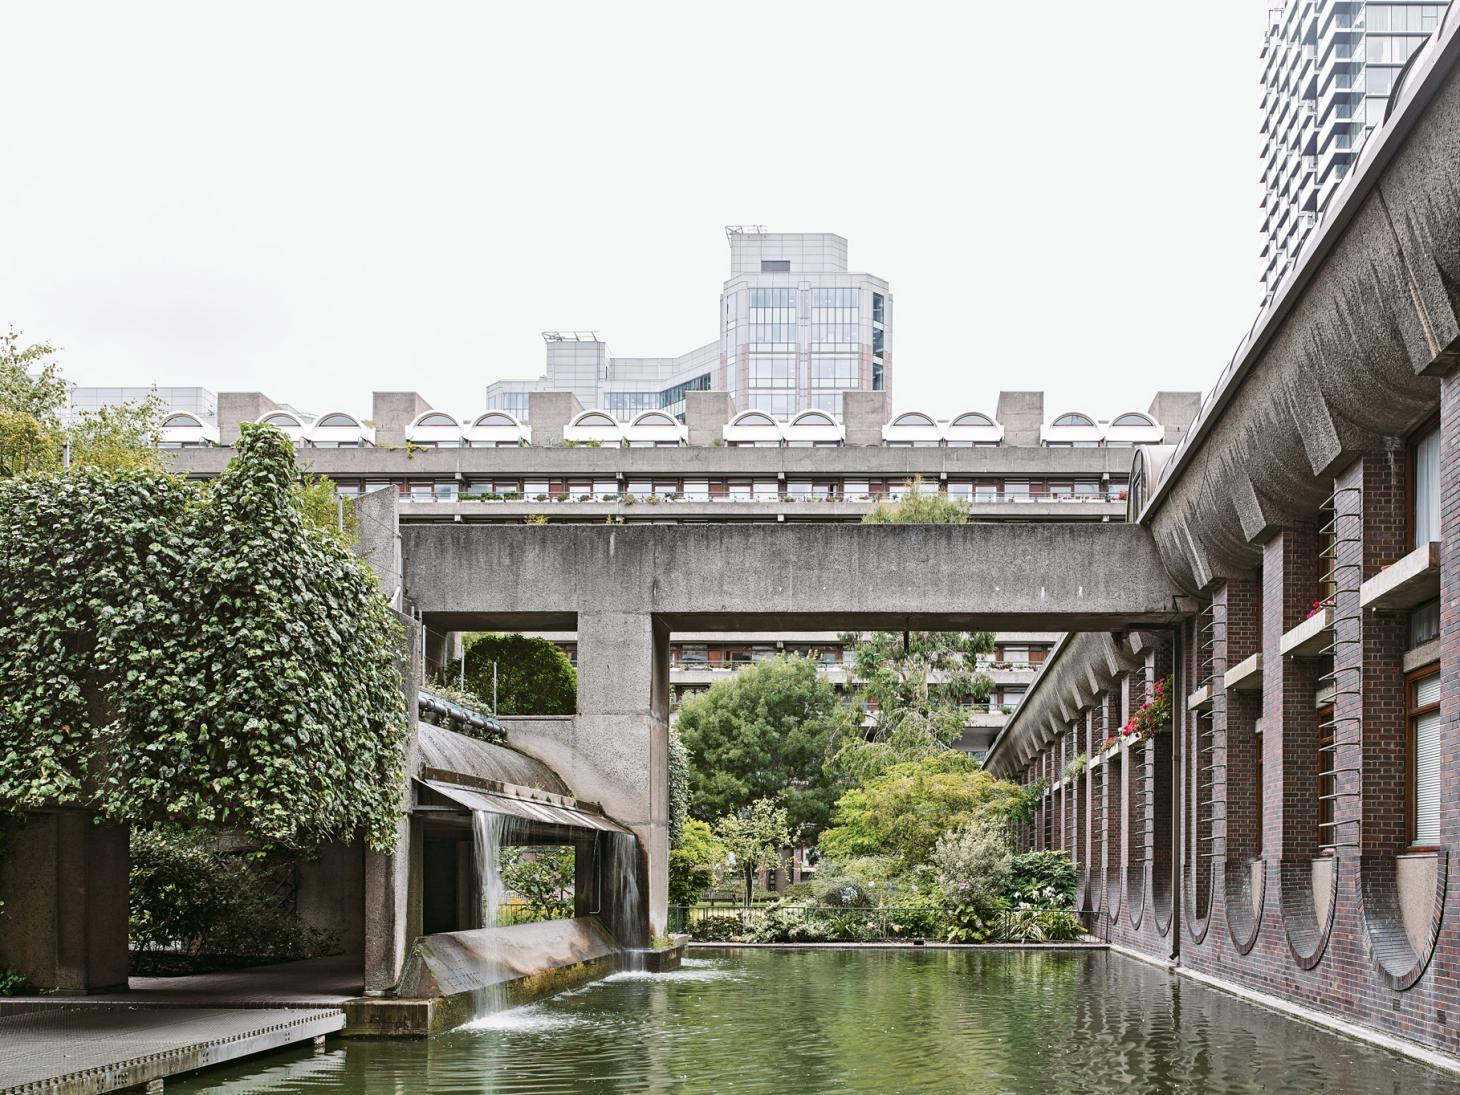 The Barbican estate book photography